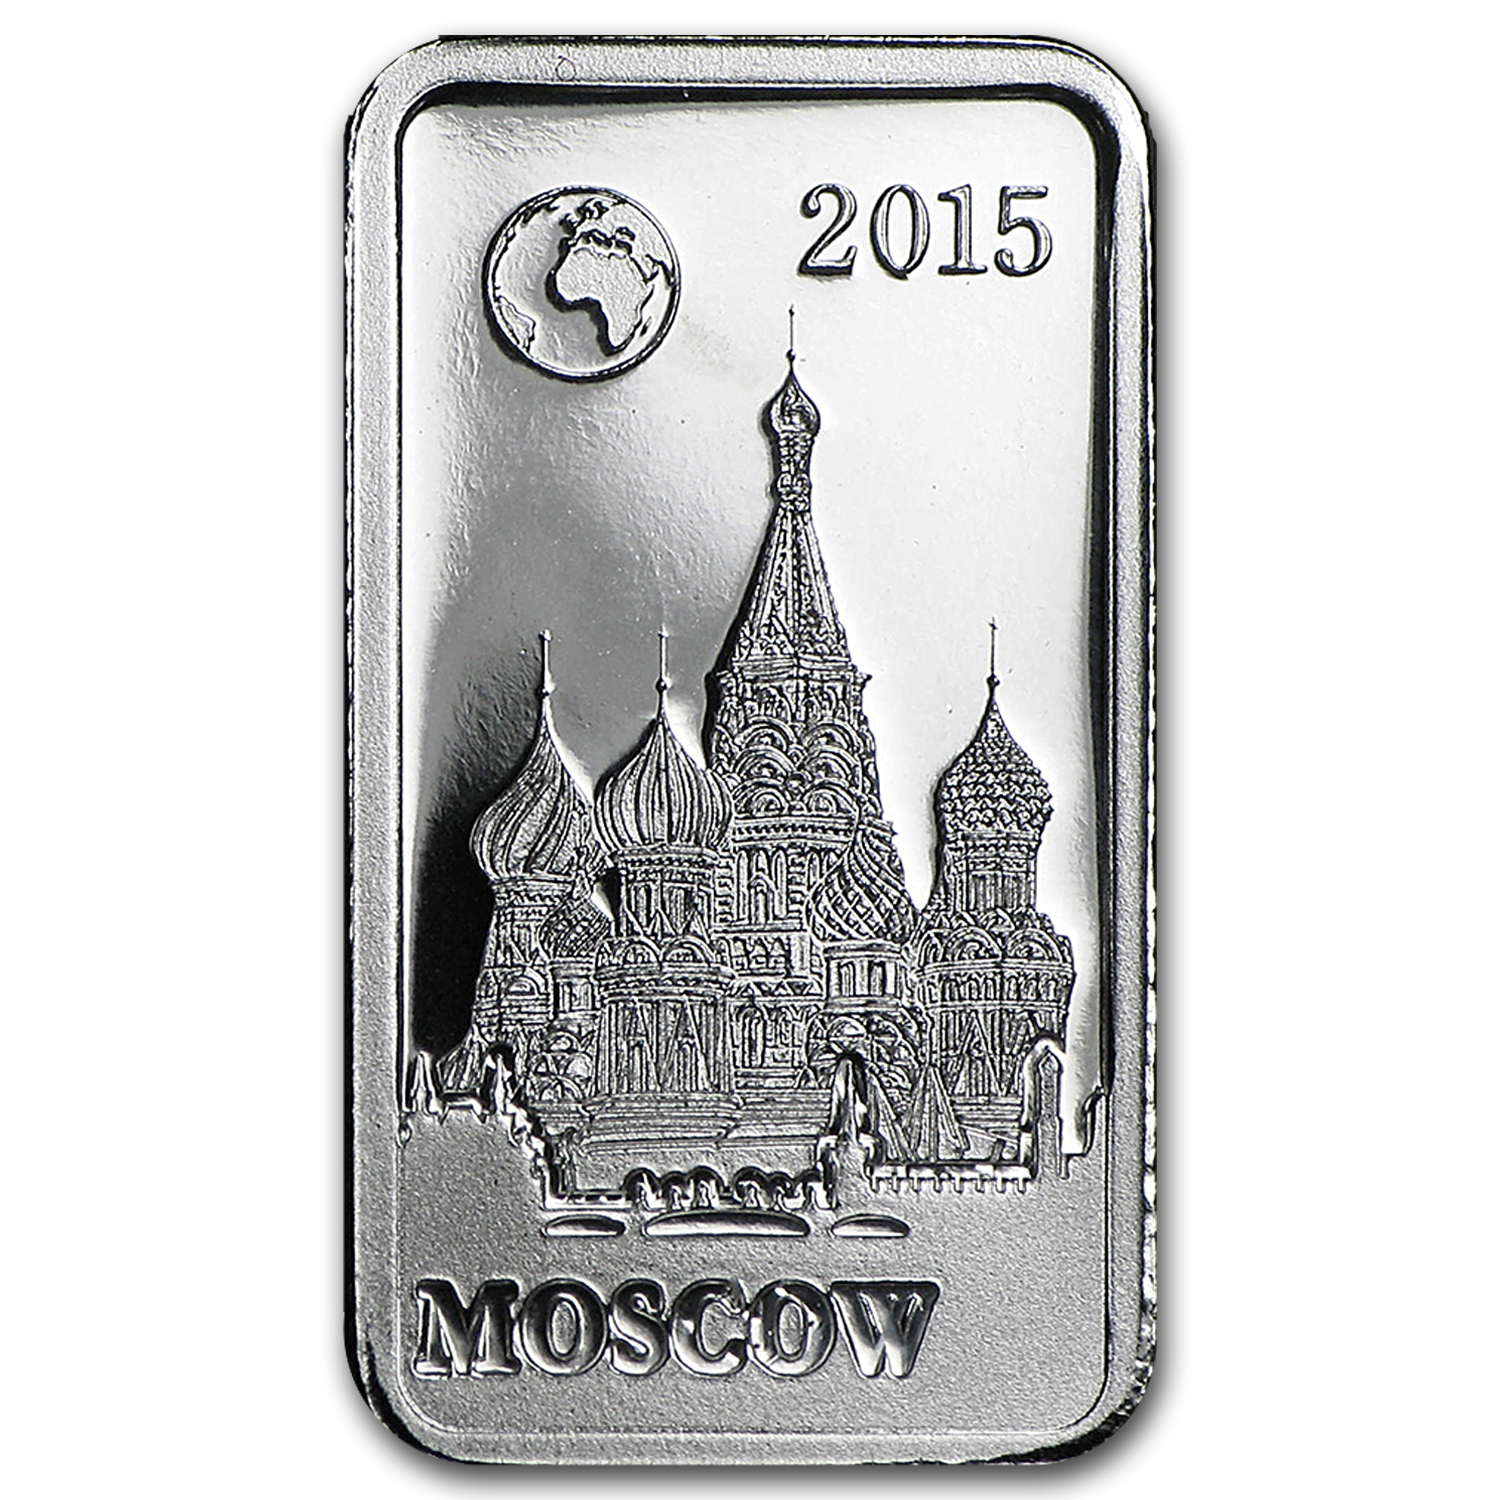 2015 Solomon Island 2.5 gr Silver Landmarks of the World (Moscow)